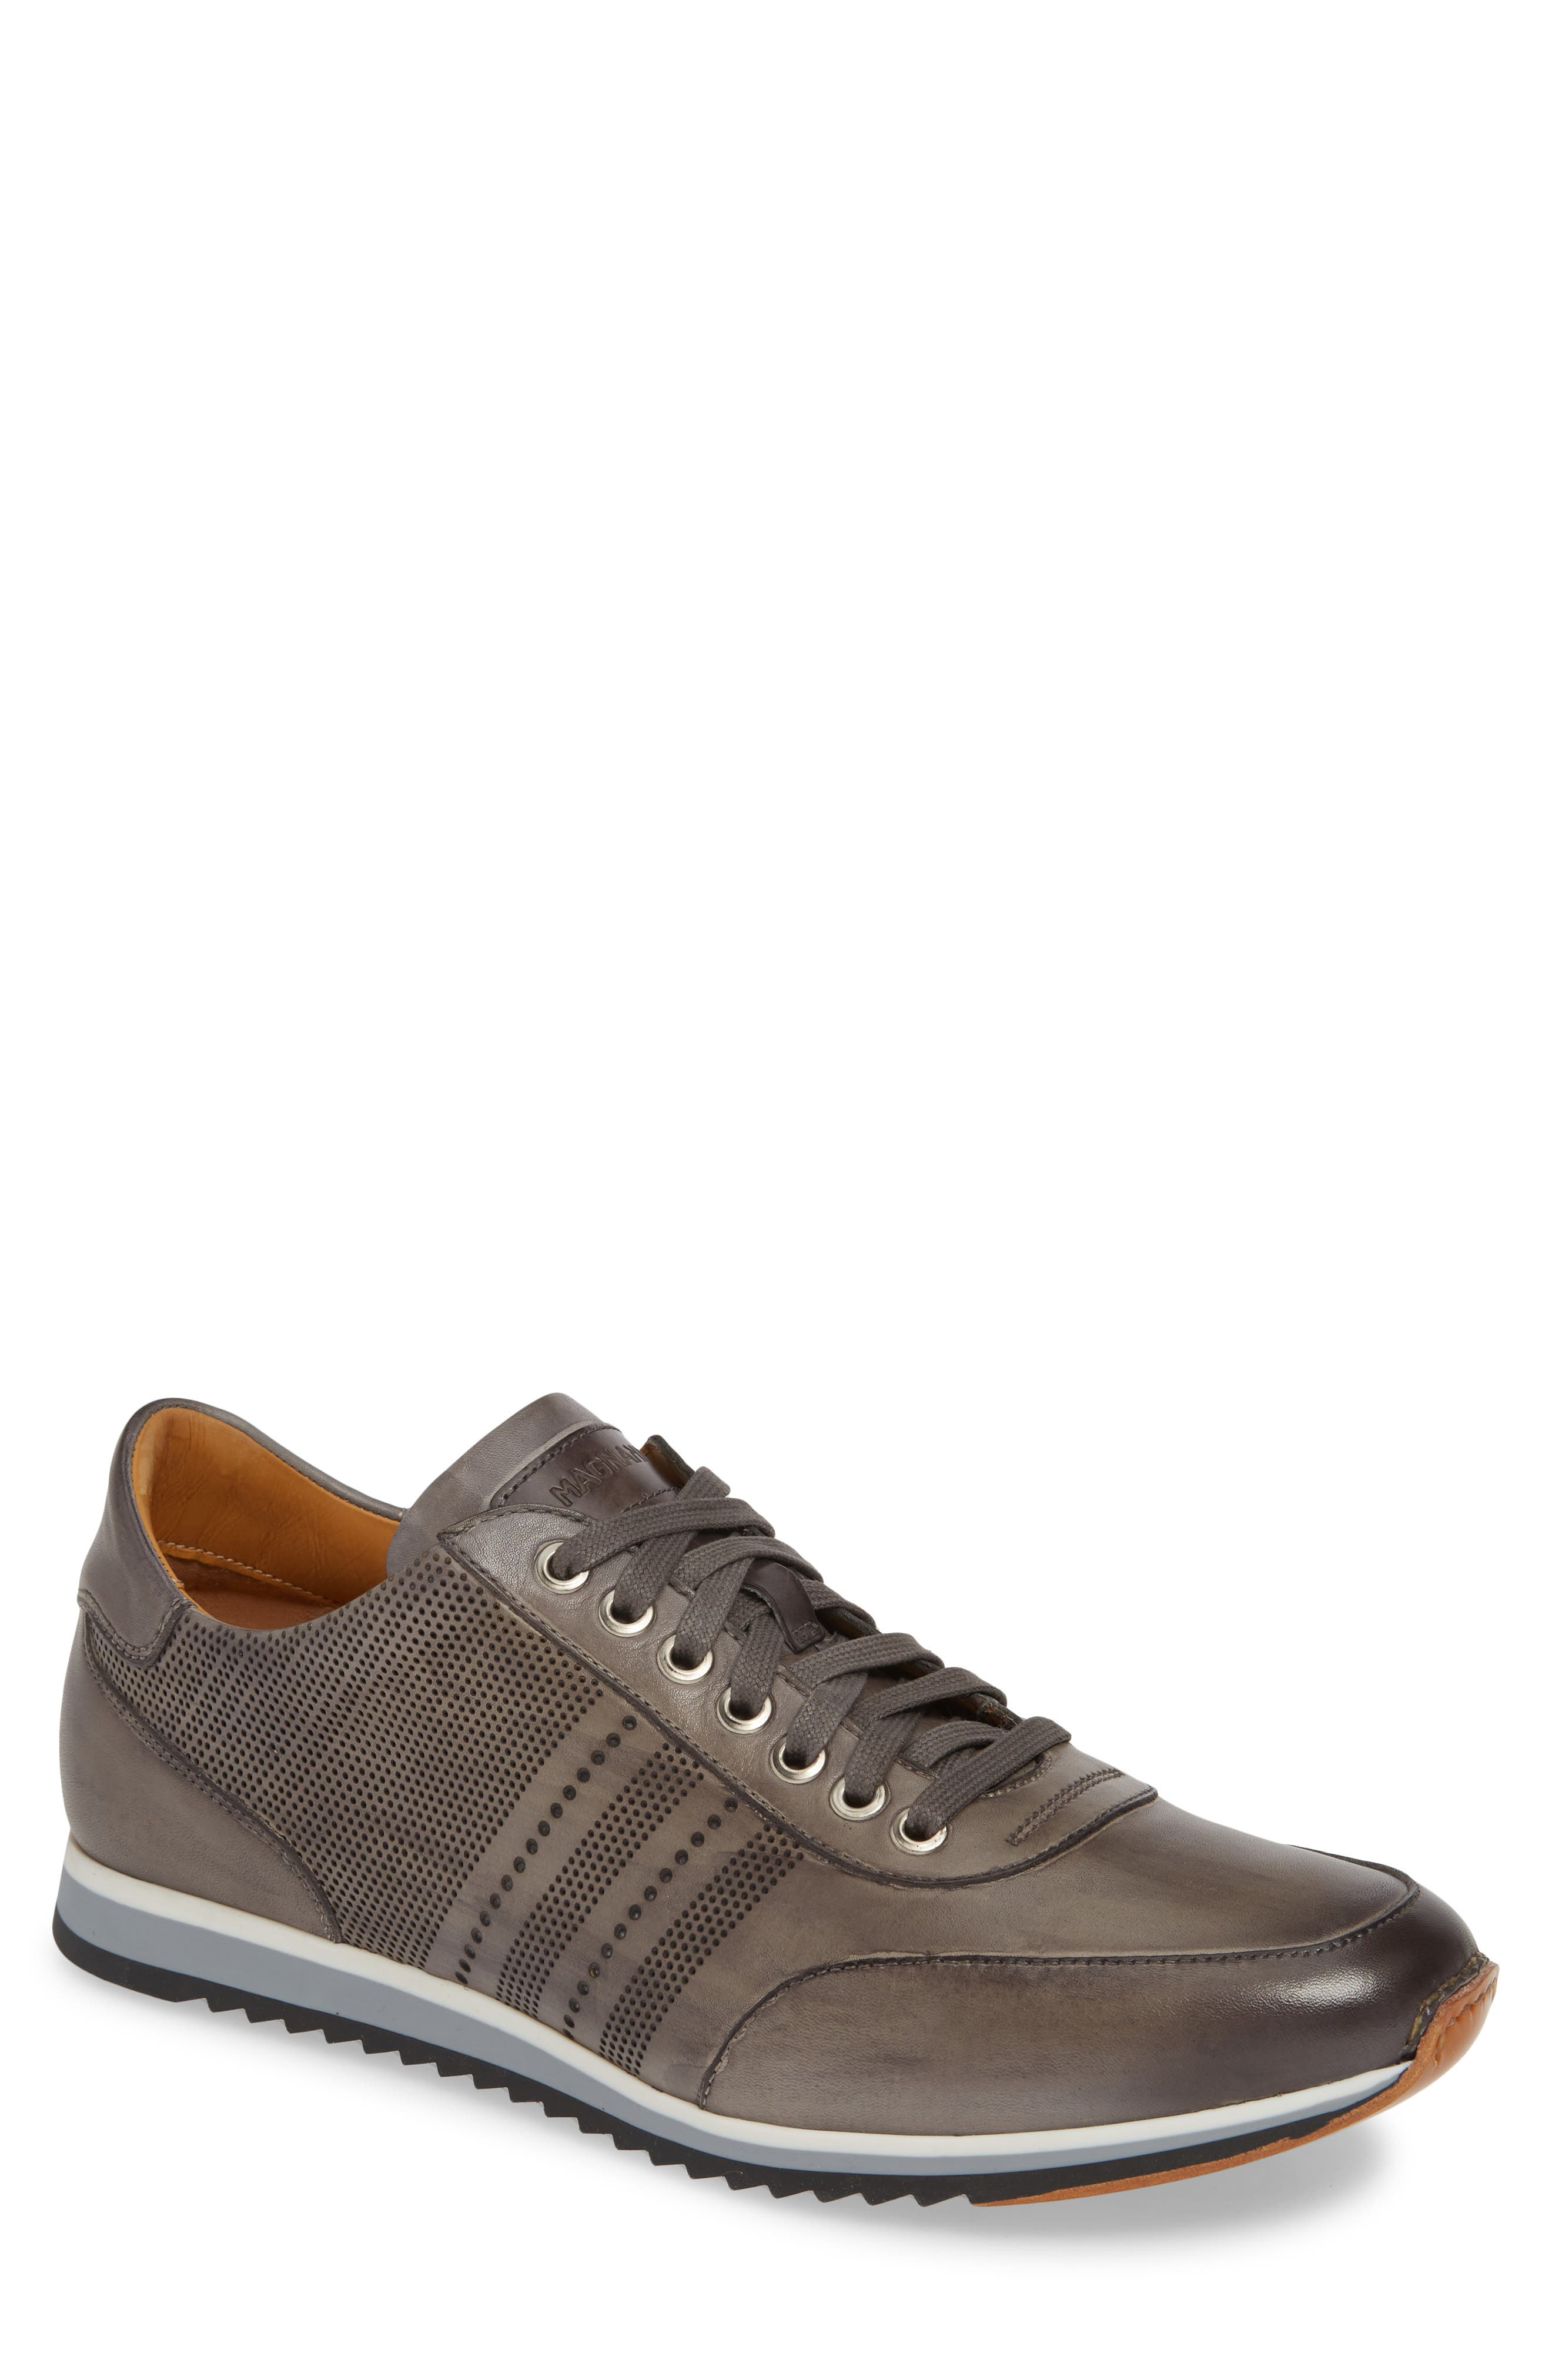 MAGNANNI, Merino Sneaker, Main thumbnail 1, color, GREY LEATHER